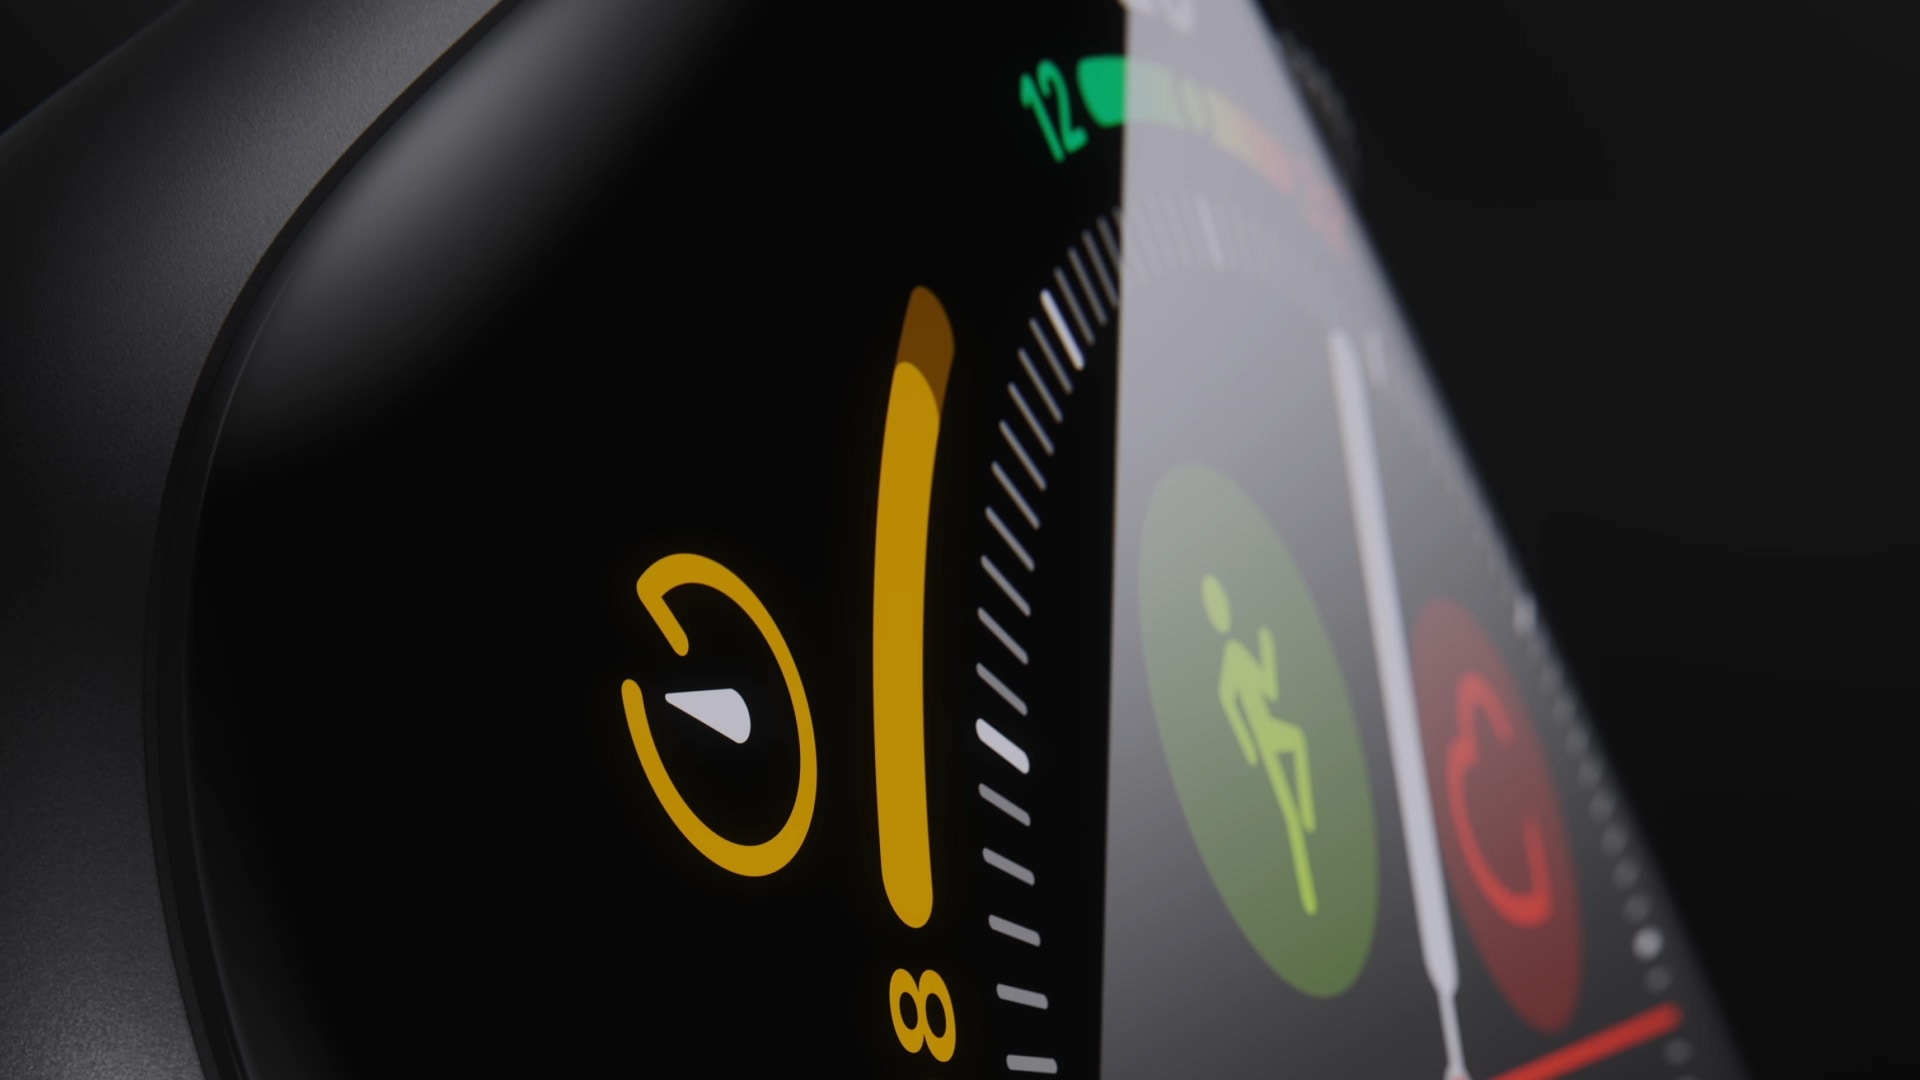 Review: Apple Watch Series 4, a primeira mudança no design do relógio